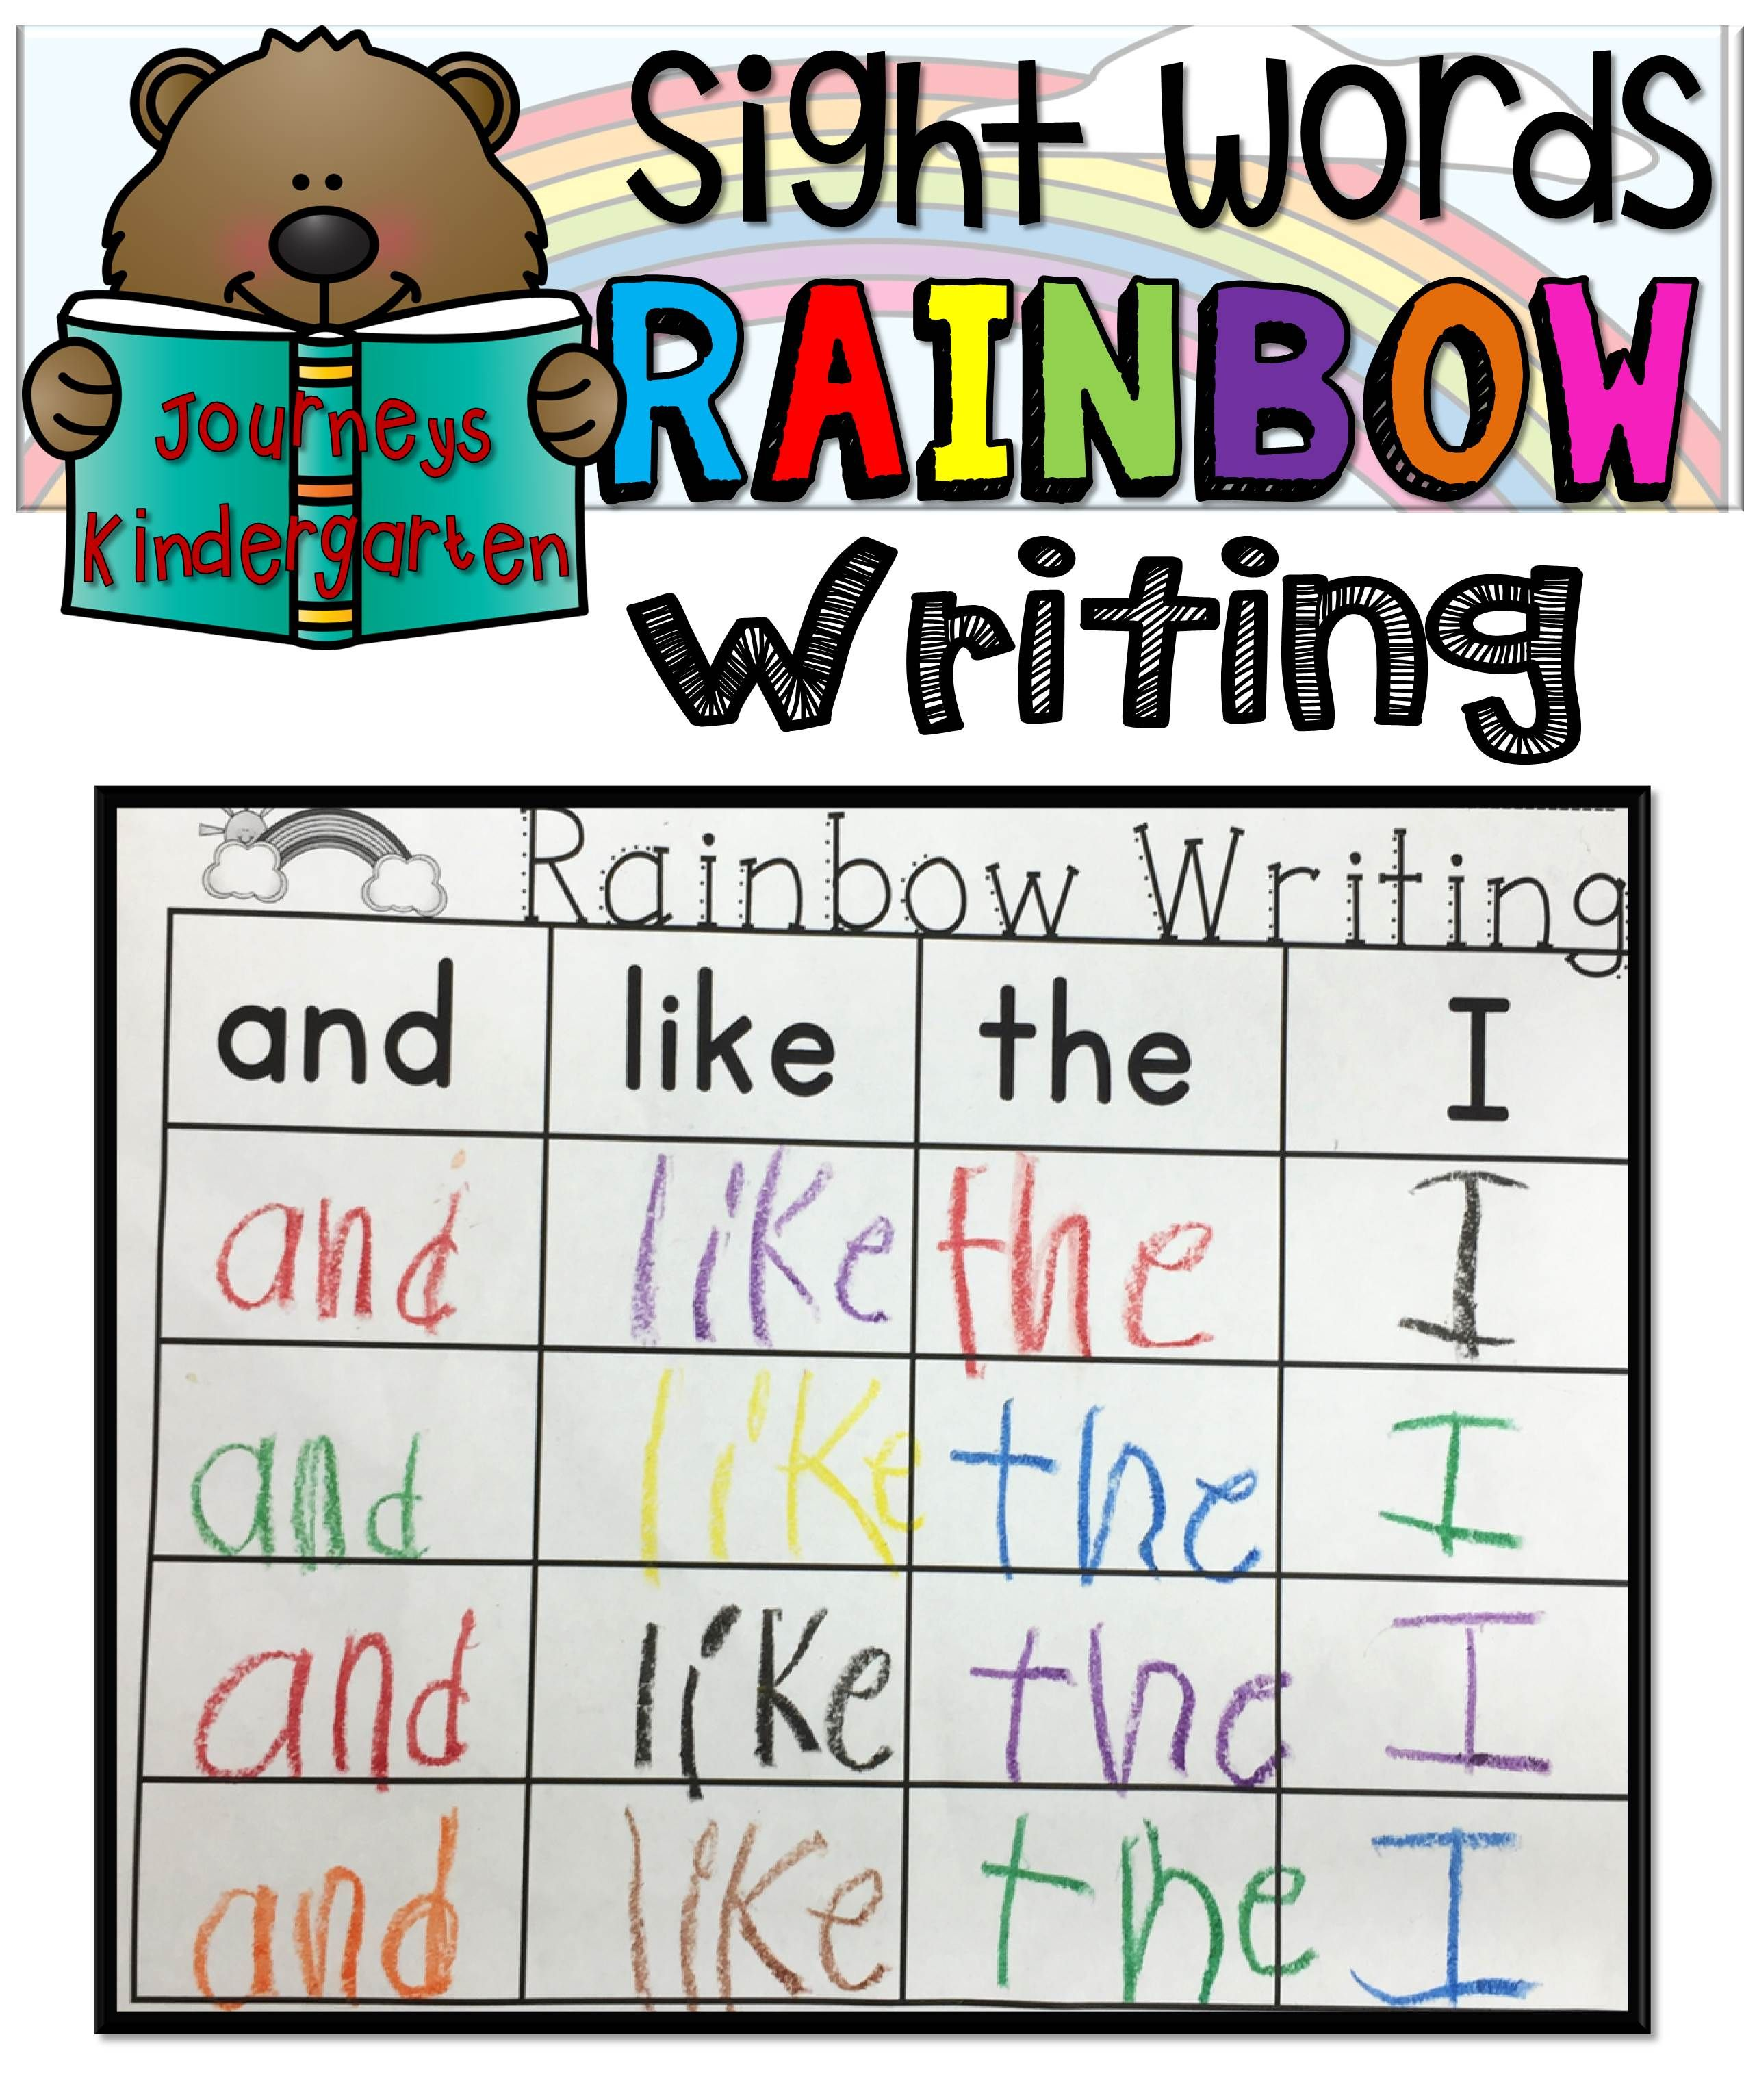 Journeys Kinder Sight Words Rainbow Writing Worksheets